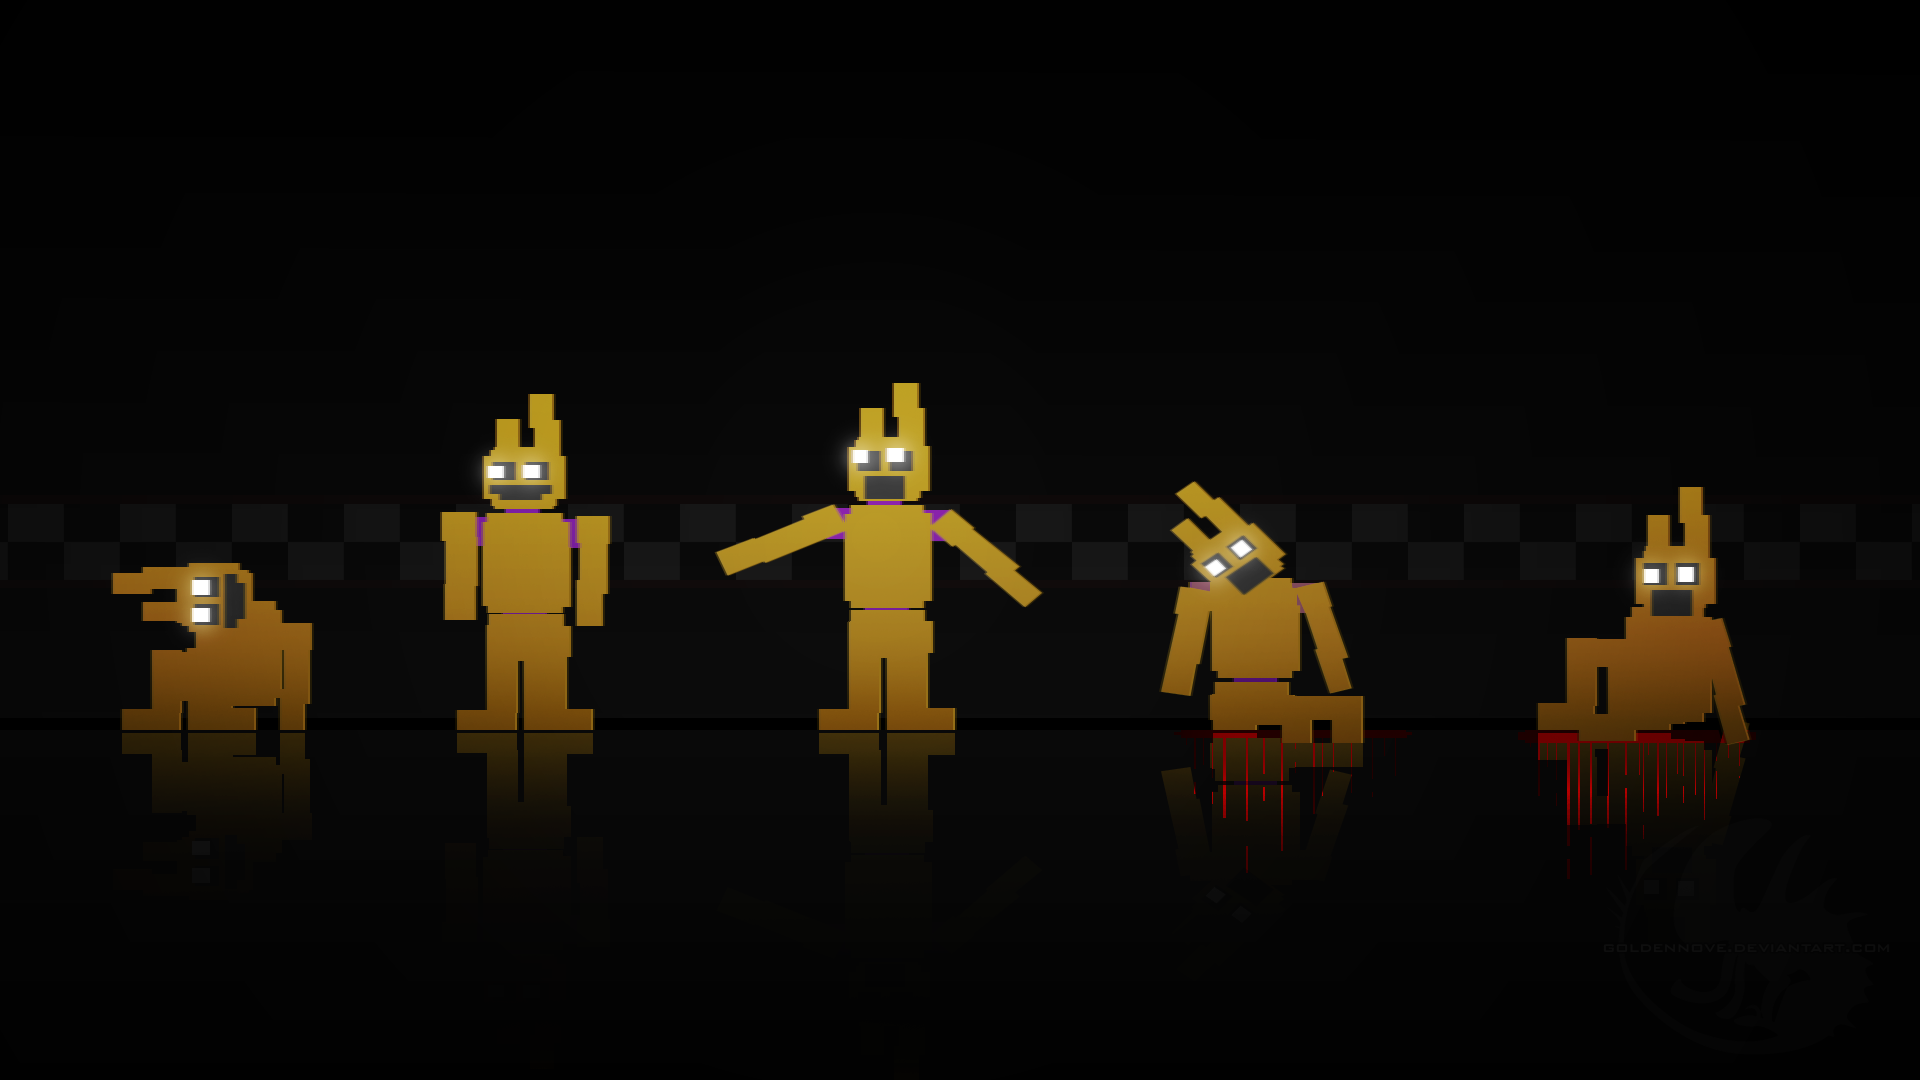 Five nights at freddy s 3 wallpaper by goldennove on deviantart